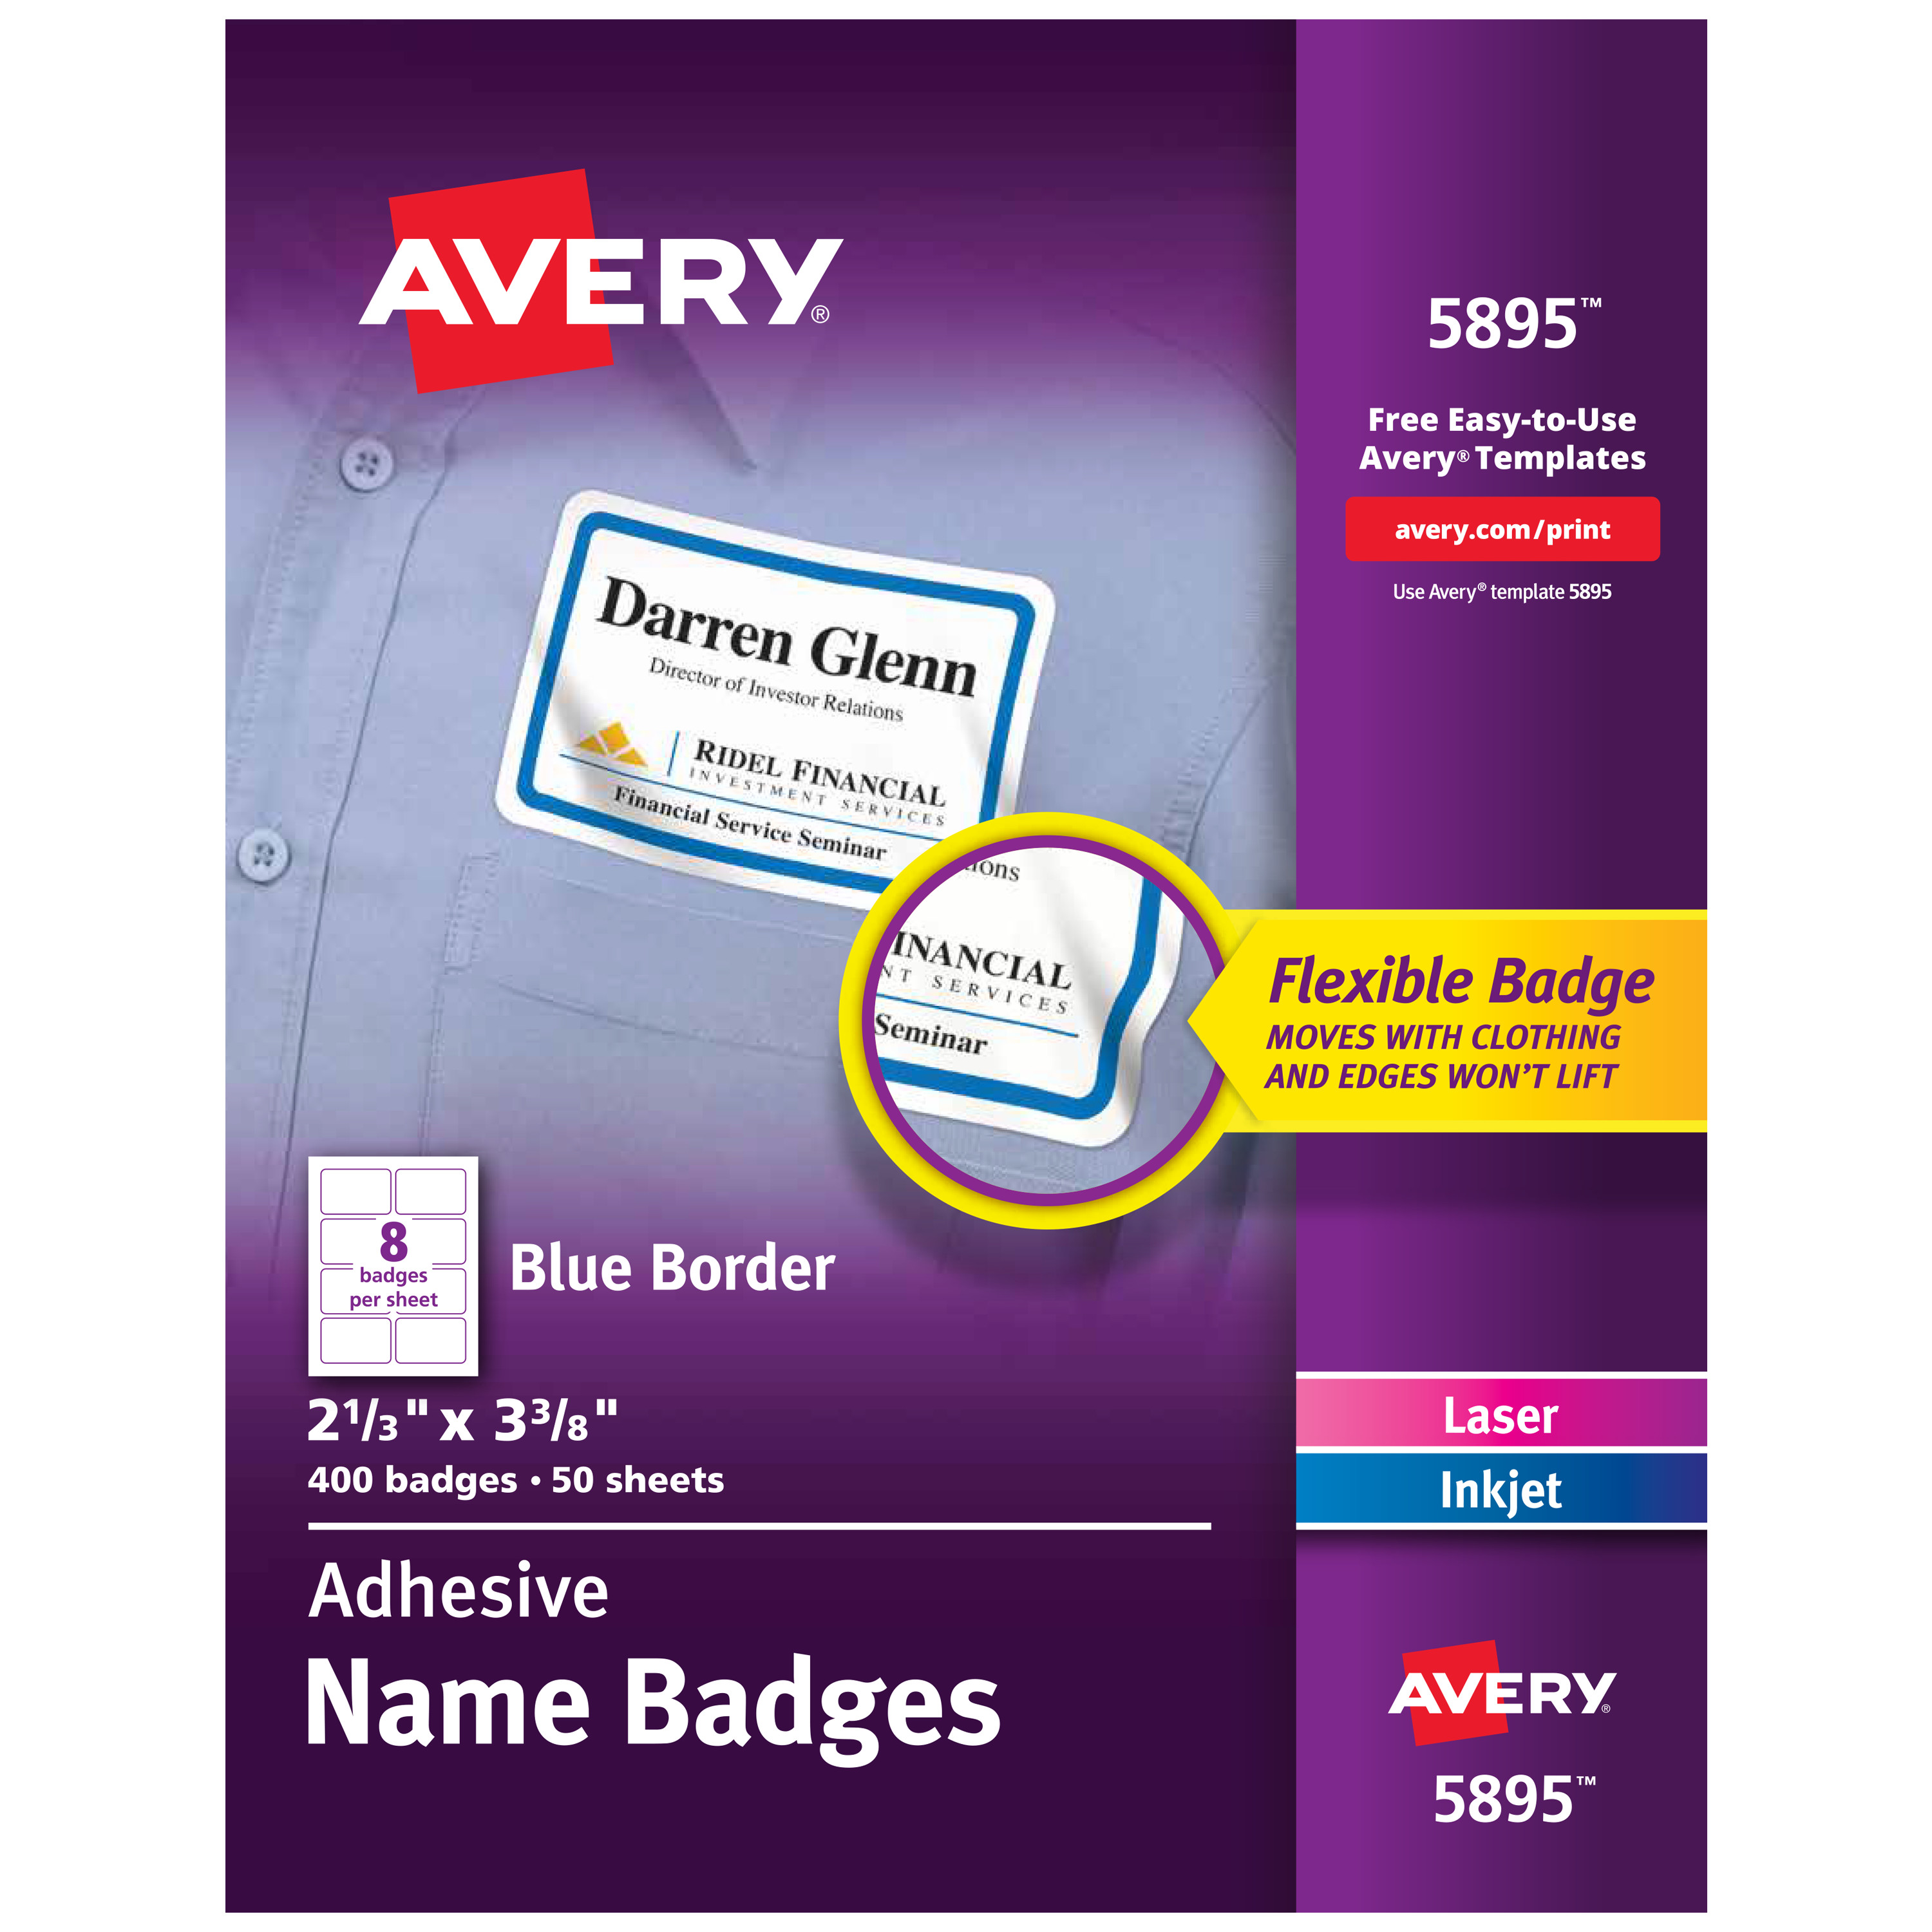 Flexible Self-Adhesive Laser/Inkjet Name Badge Labels, 2 1/3 x 3 3/8, BE, 400/BX